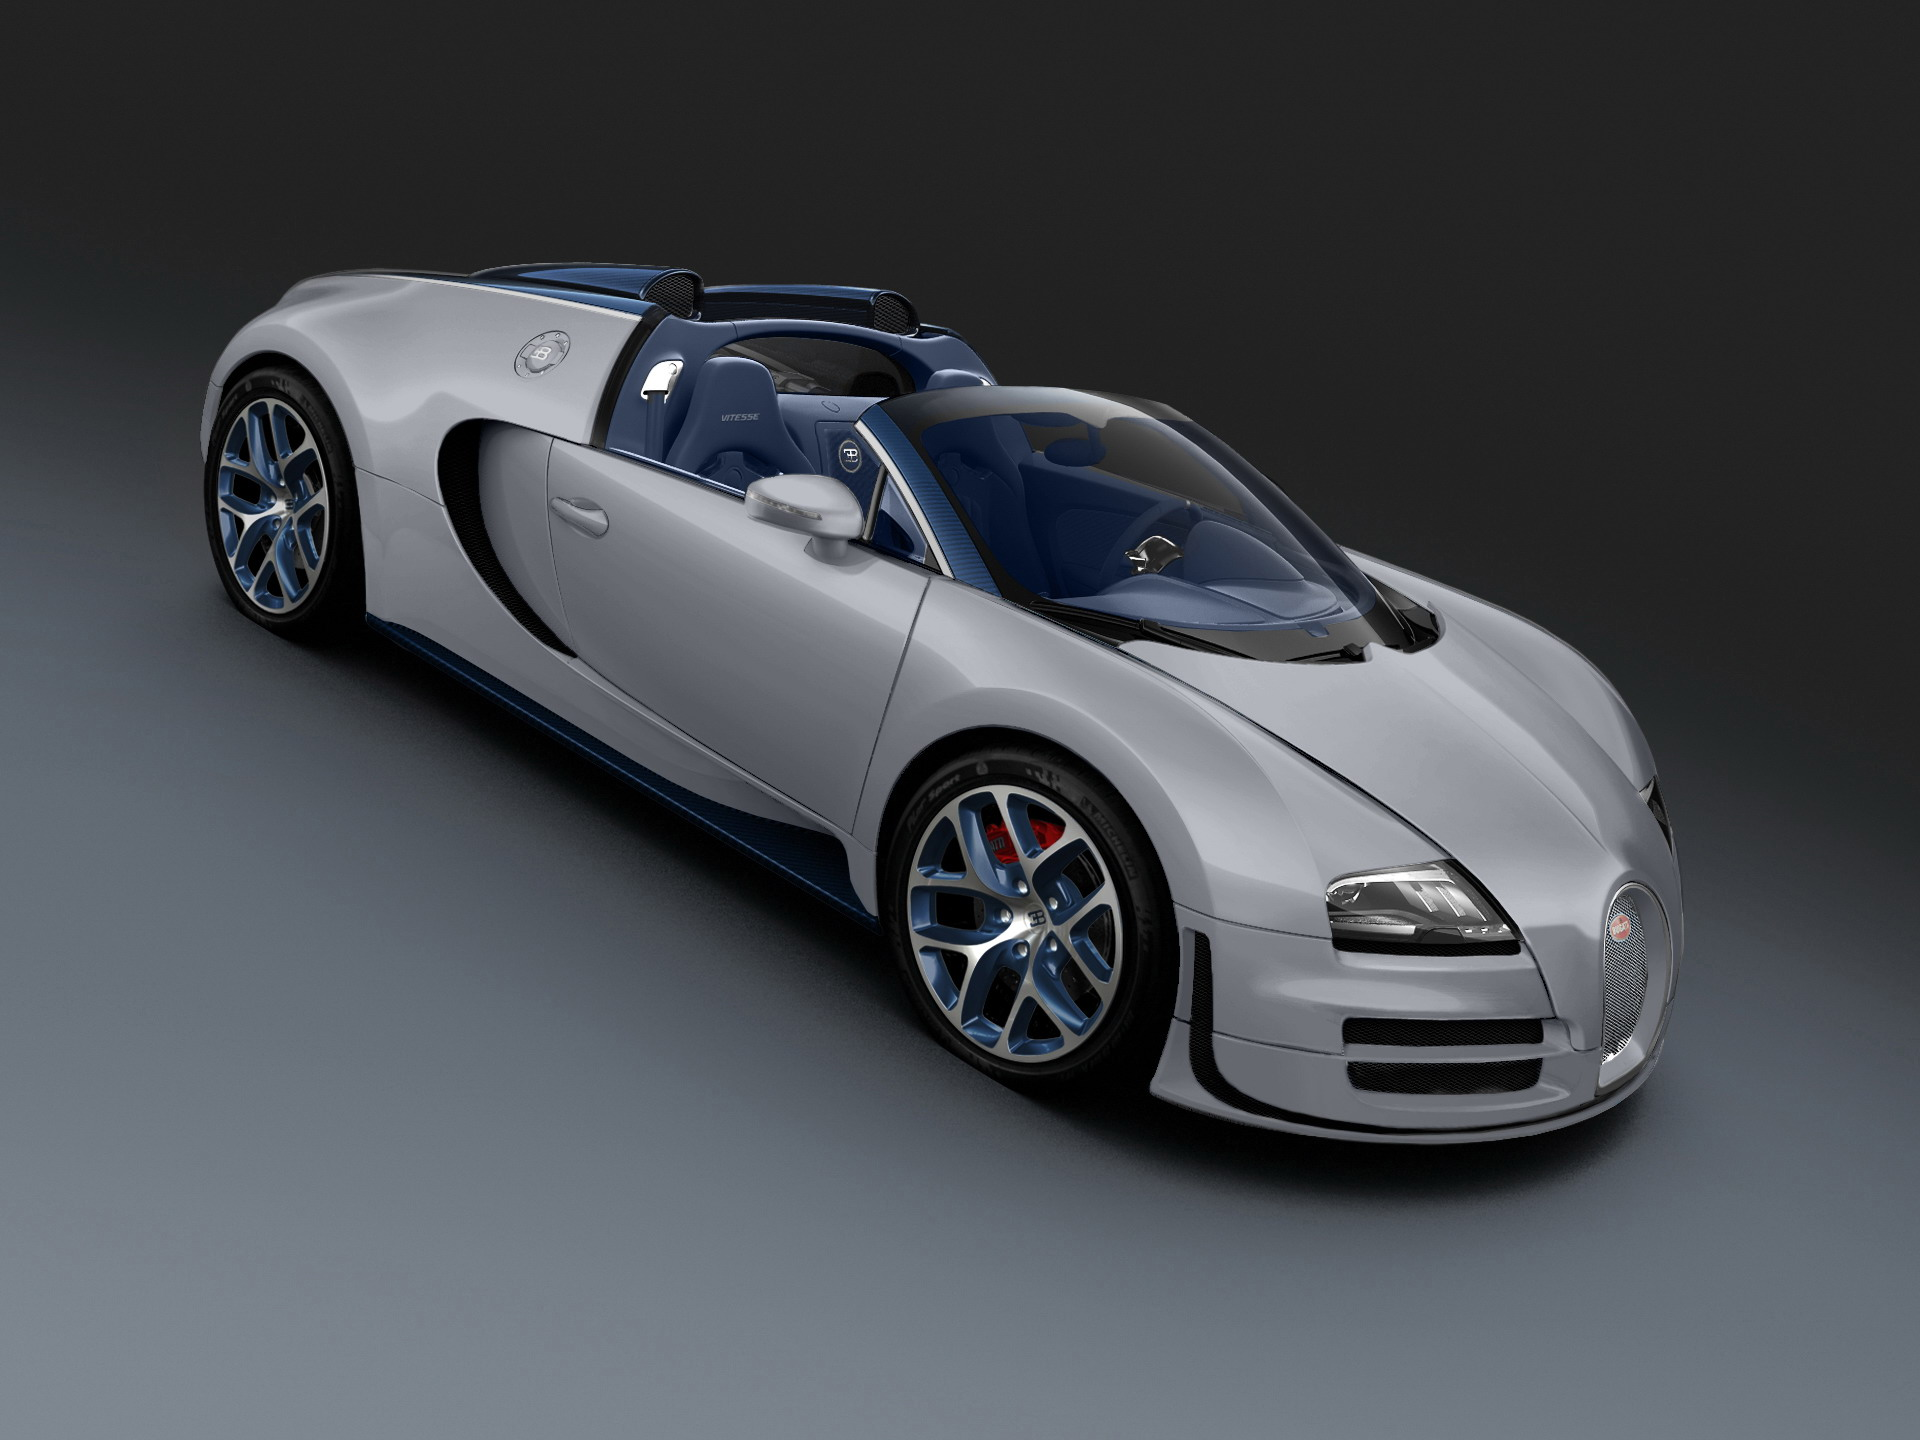 2012 bugatti veyron grand sport vitesse gris rafale review. Black Bedroom Furniture Sets. Home Design Ideas